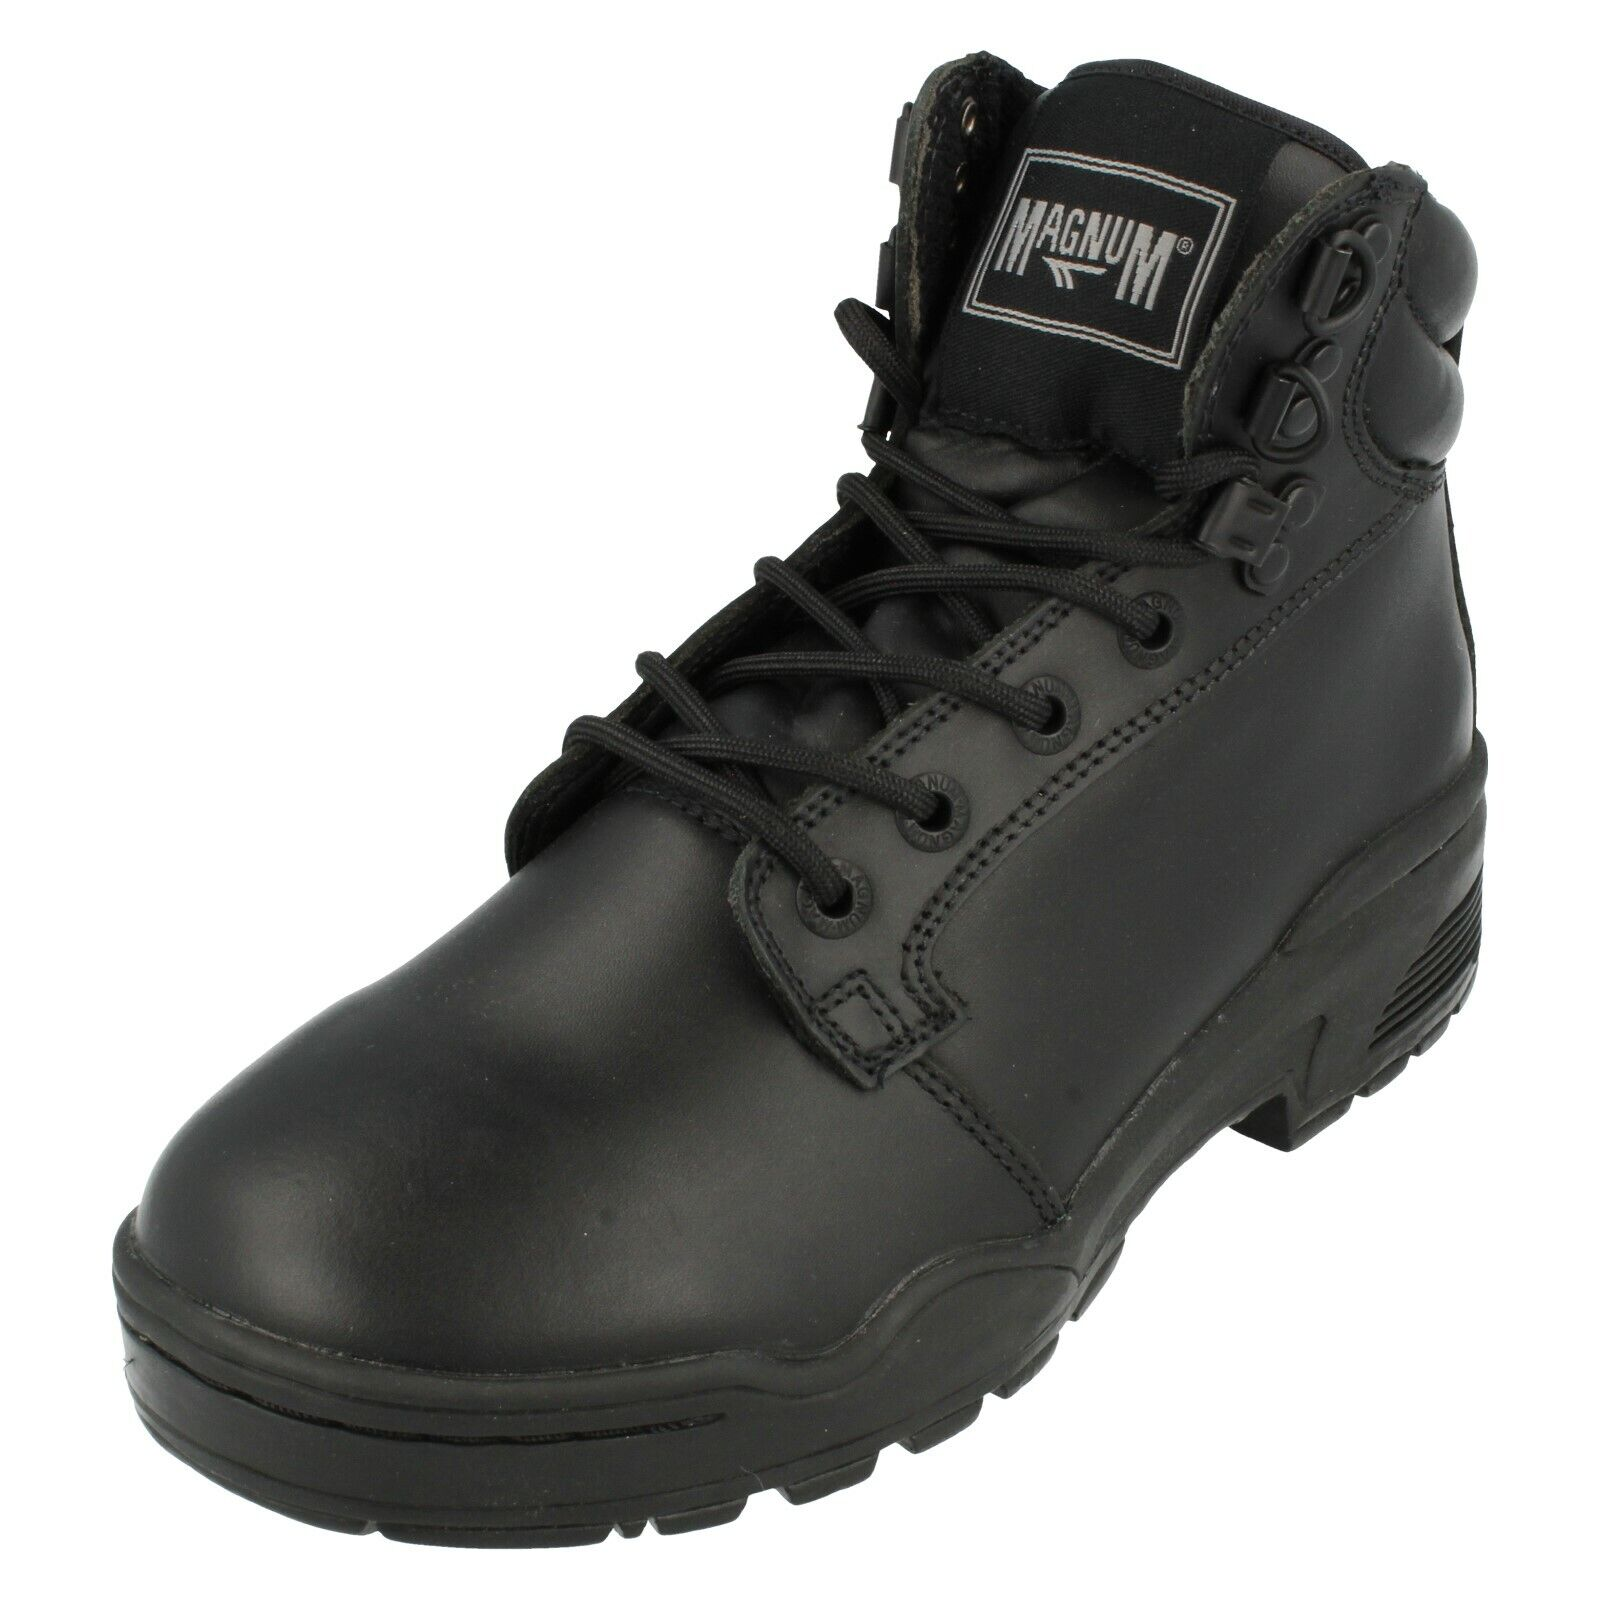 Unisex Magnum Lace Up Leather Work Boots : Patrol